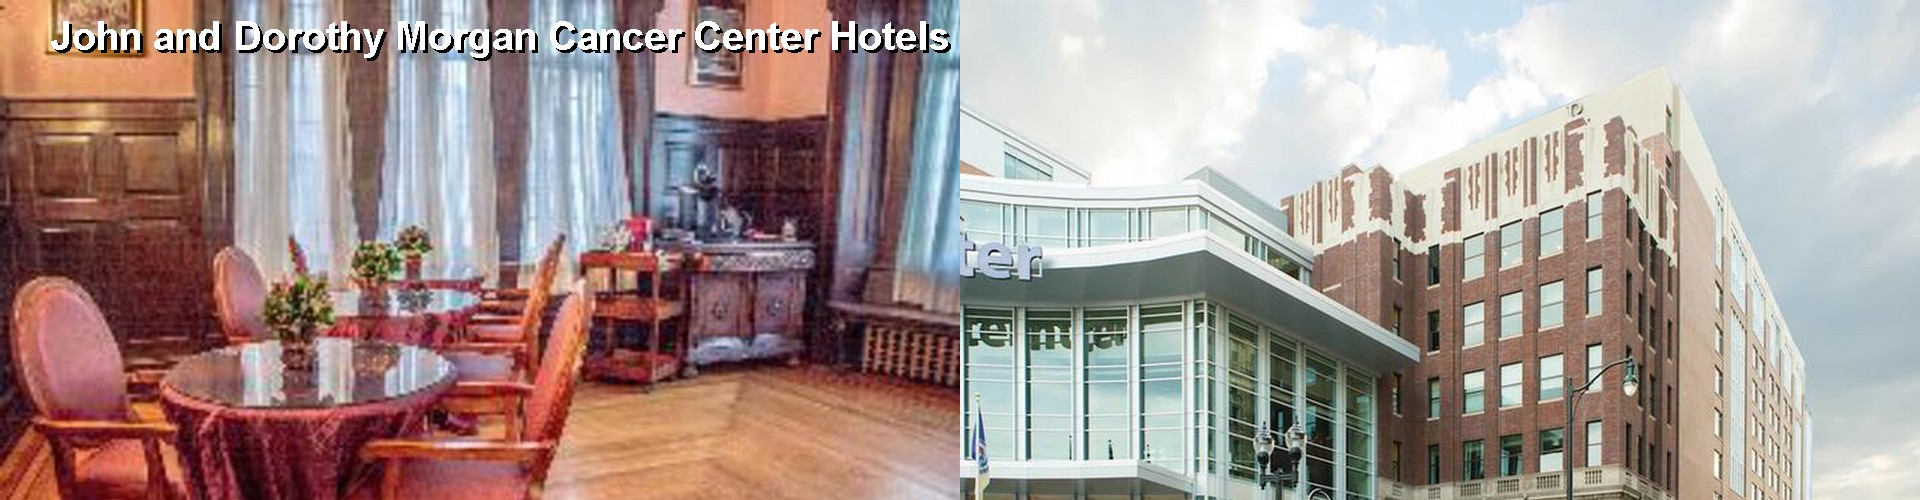 5 Best Hotels near John and Dorothy Morgan Cancer Center